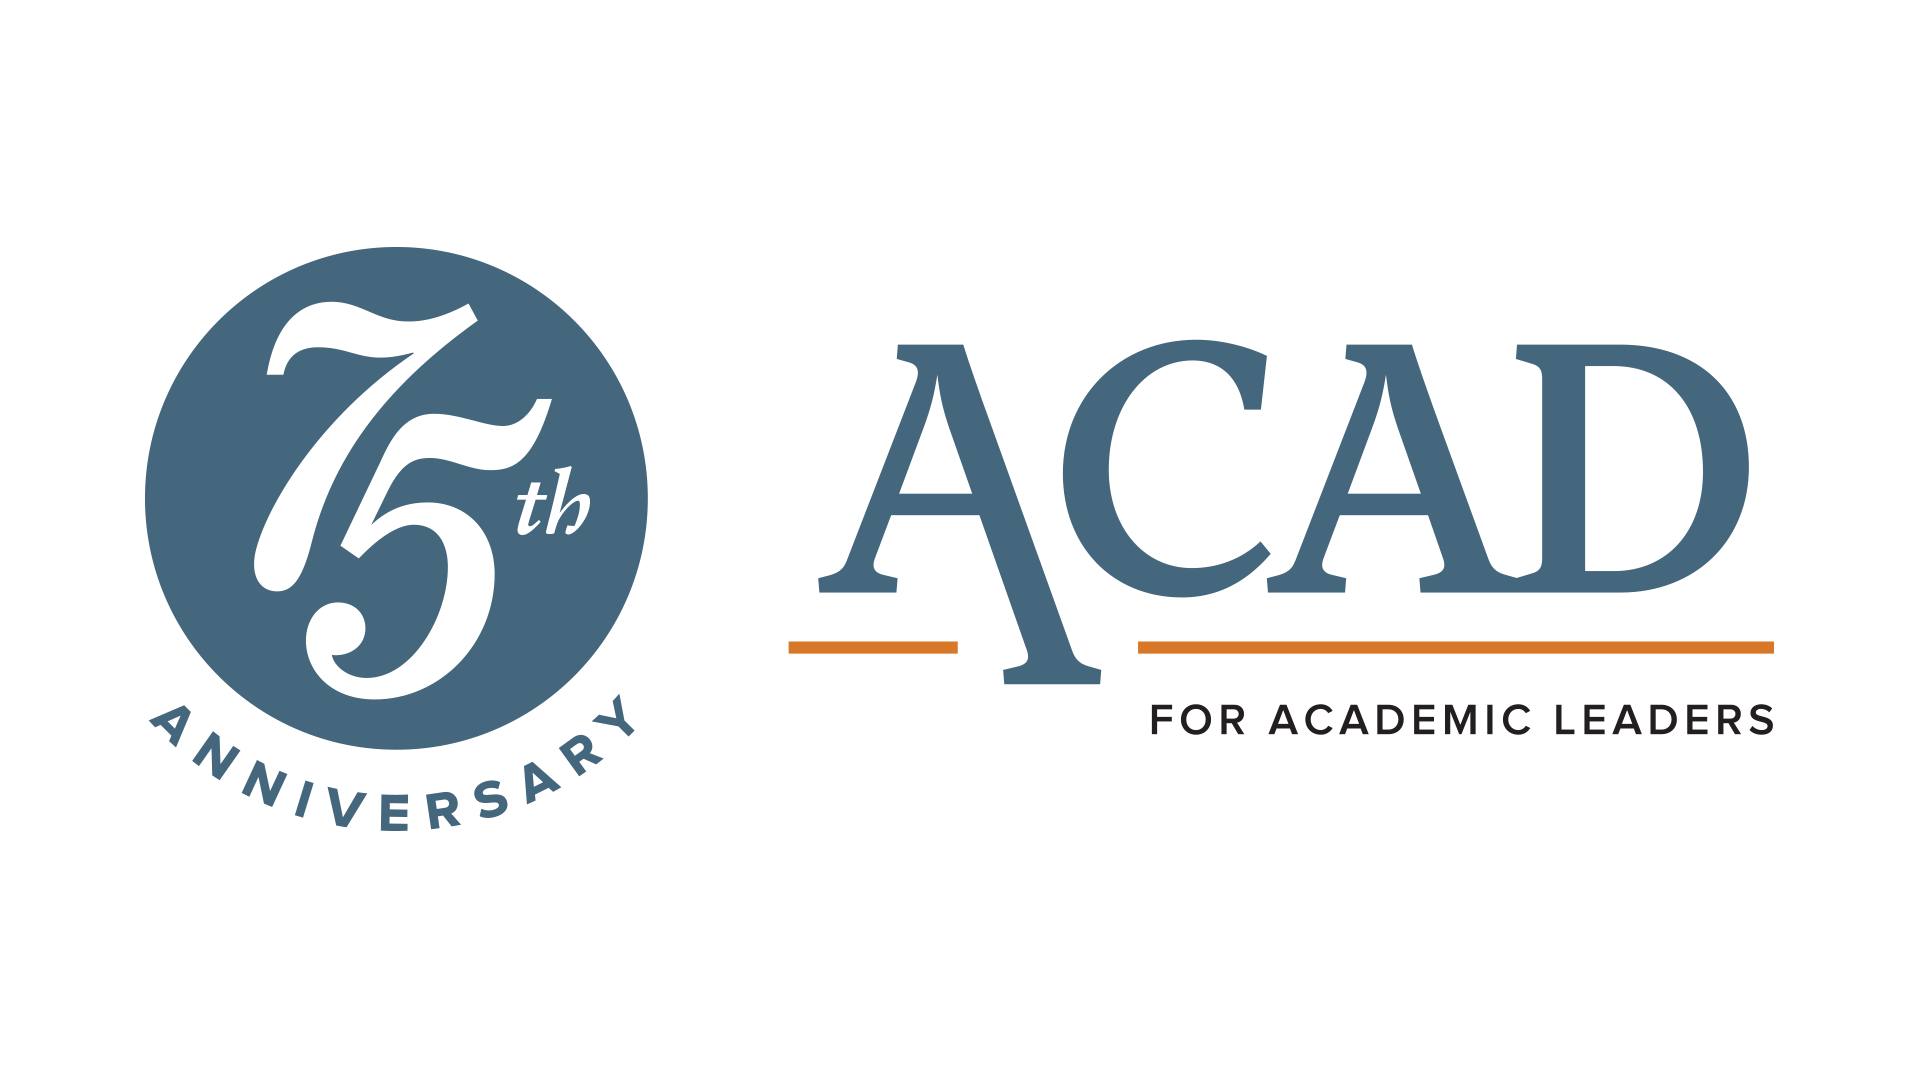 ACAD_75thAnniv_logo_1920x1080